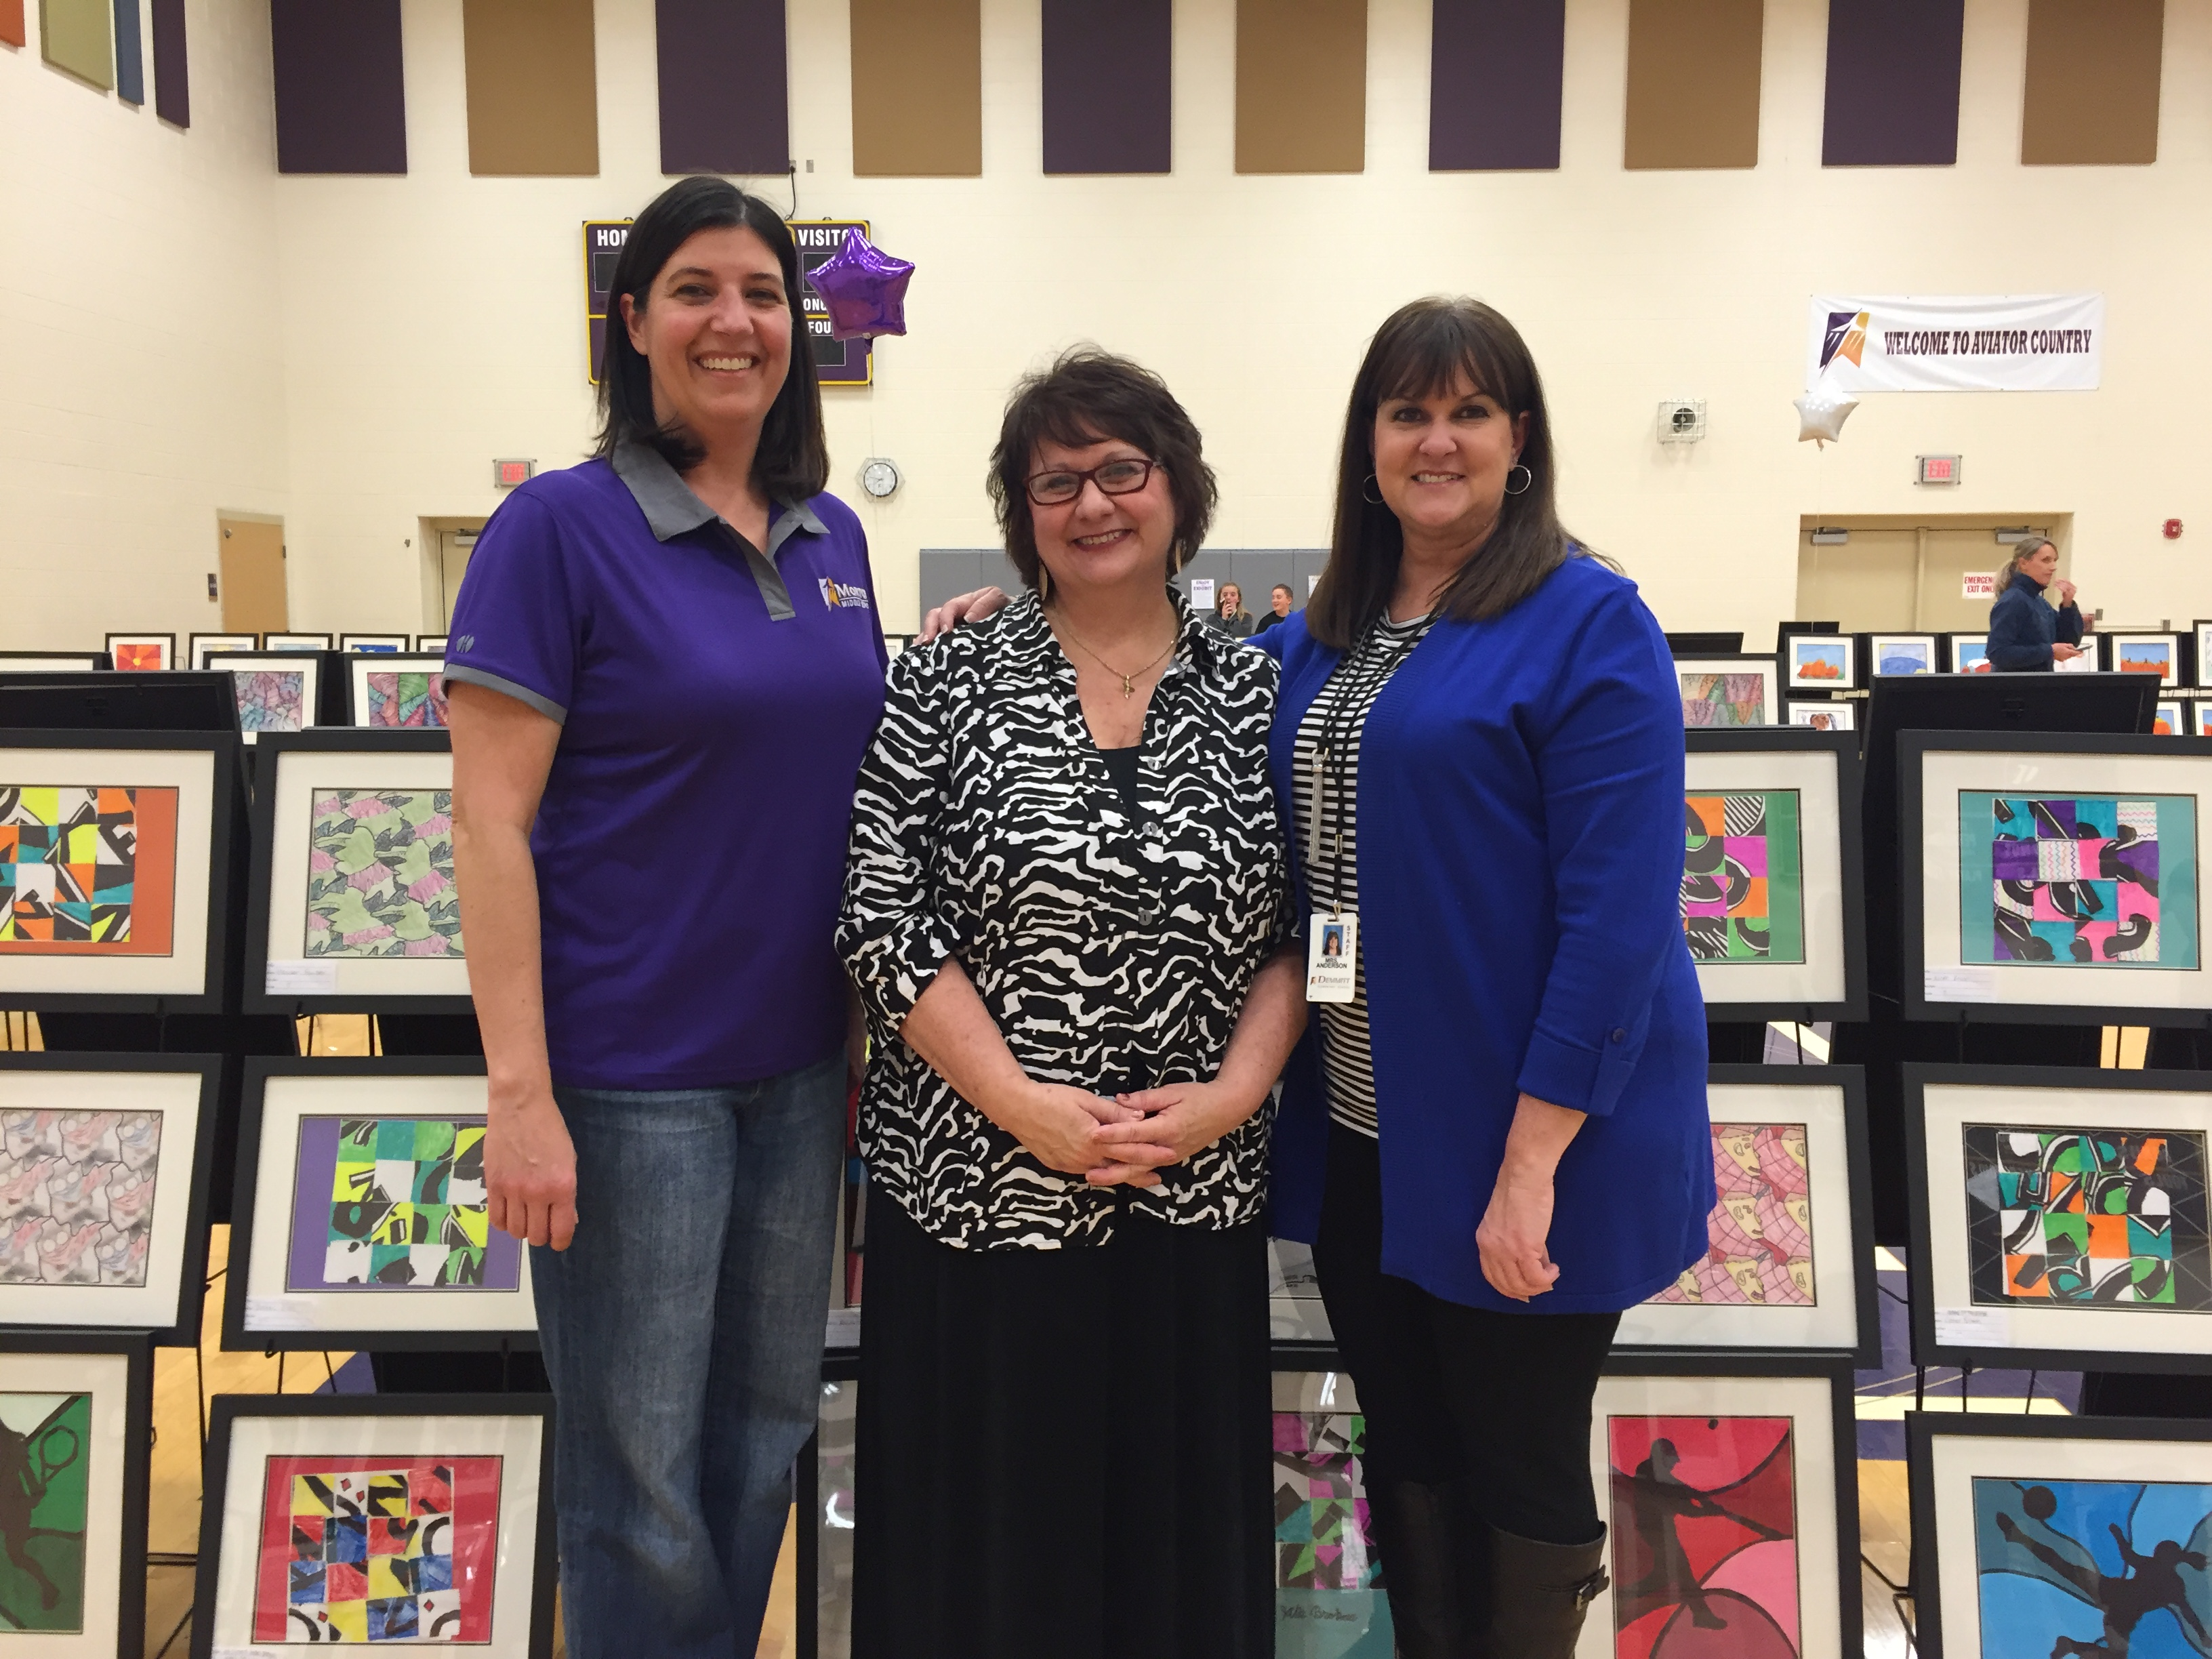 More Awards for Vandalia-Butler Art Program